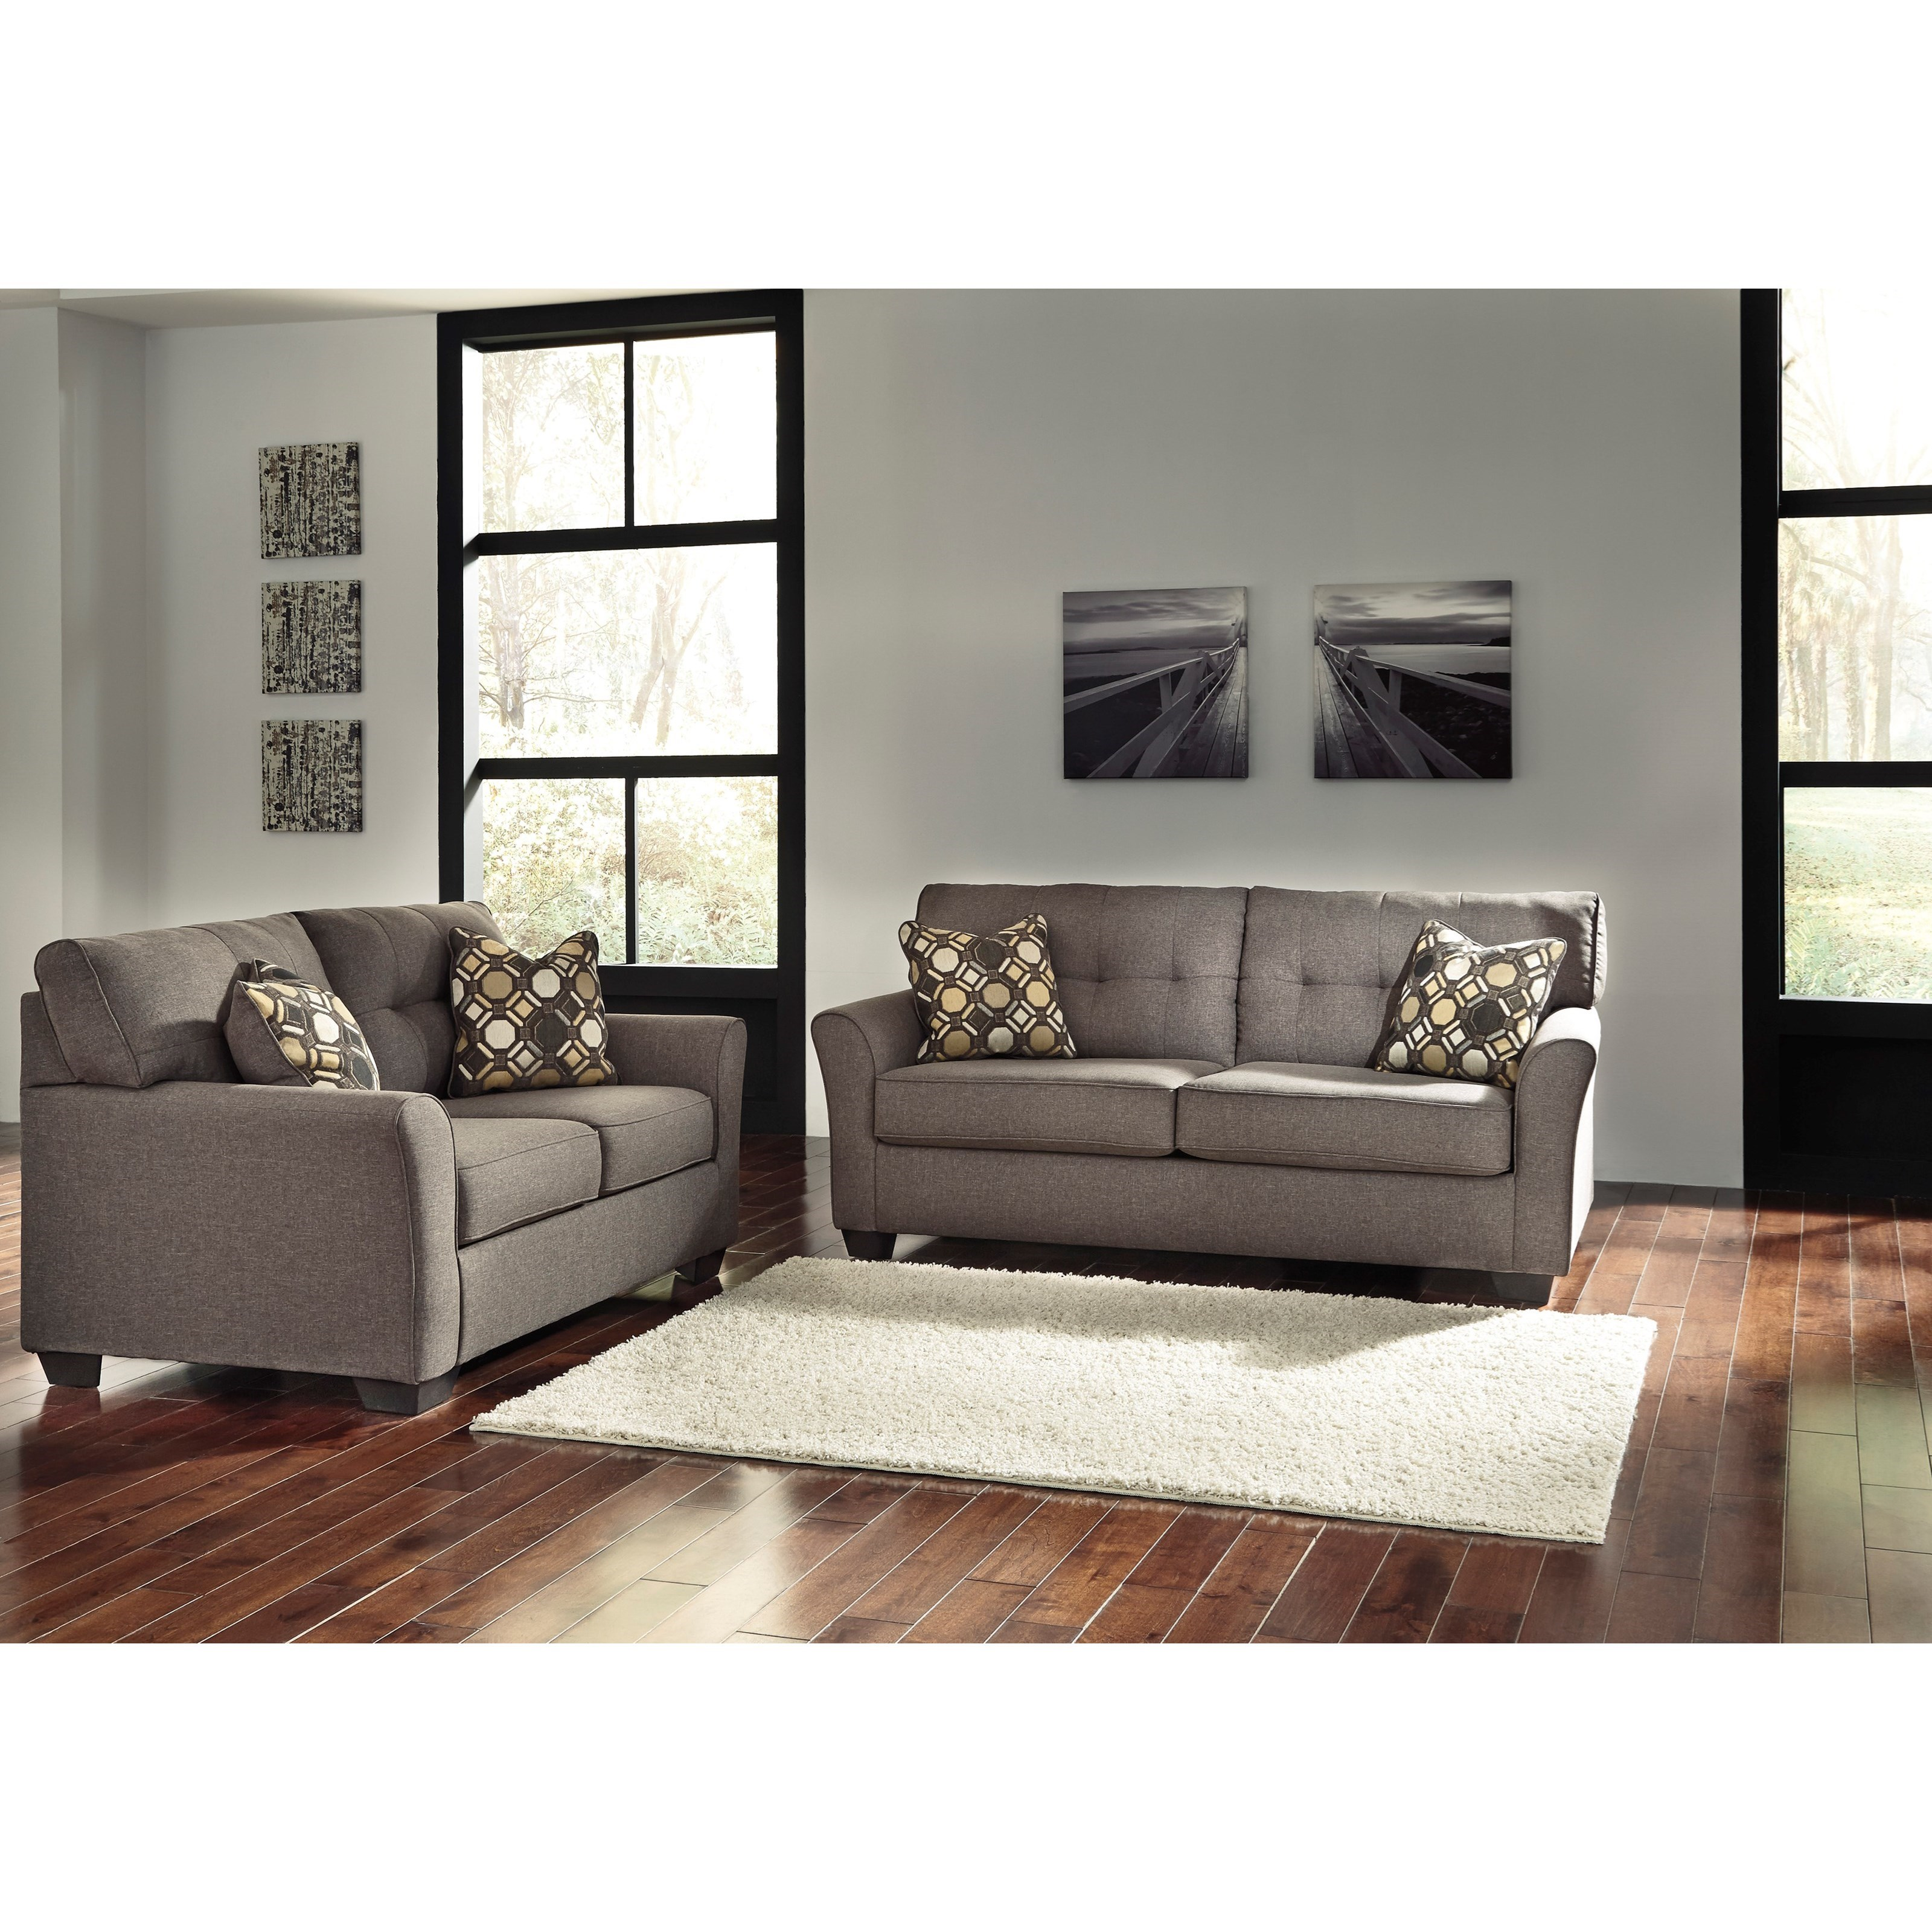 Signature design by ashley tibbee stationary living room for Living room furniture groups